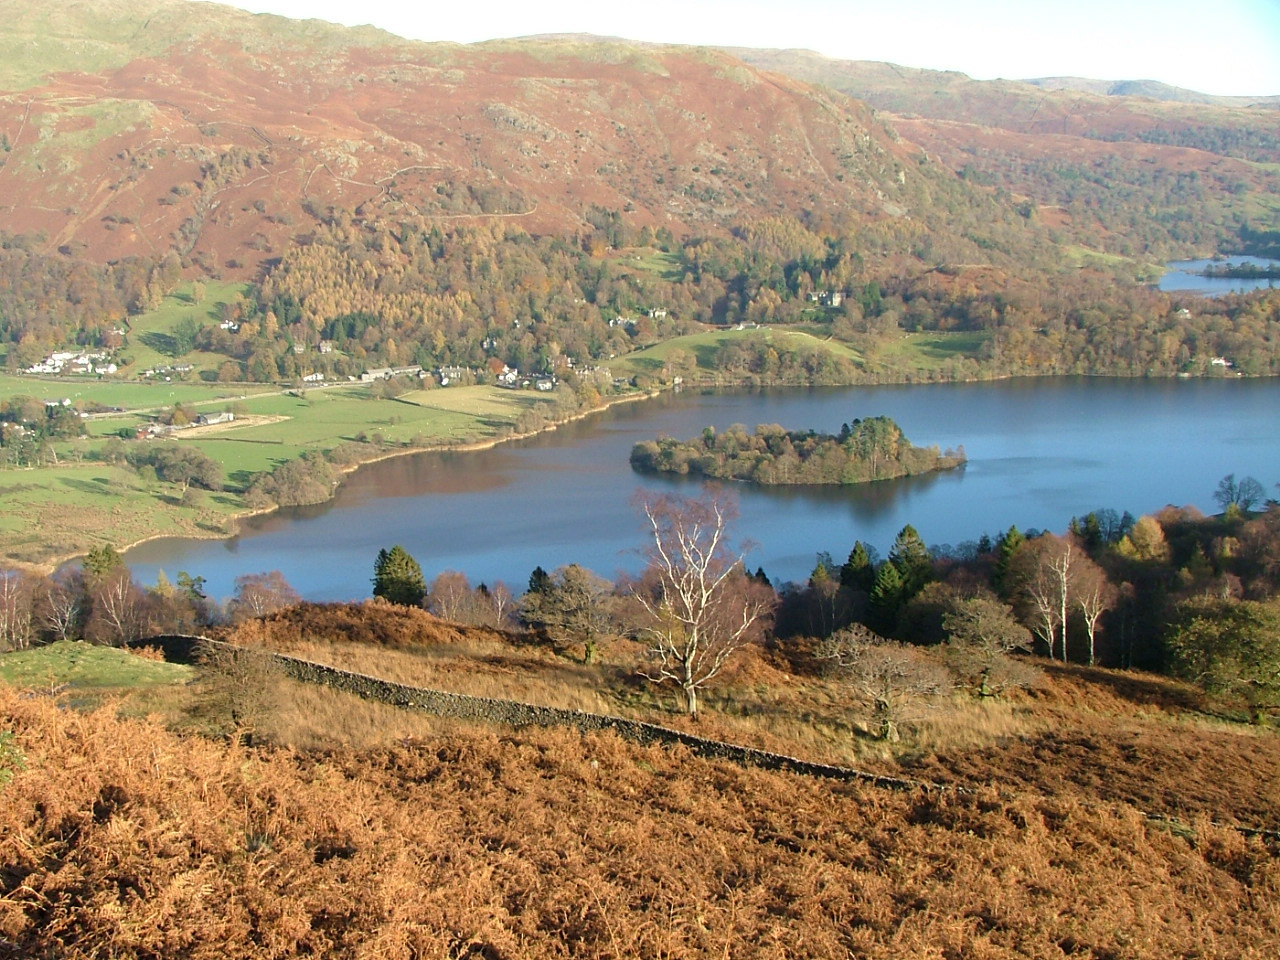 An autumn day looking over a lake in Cumbria